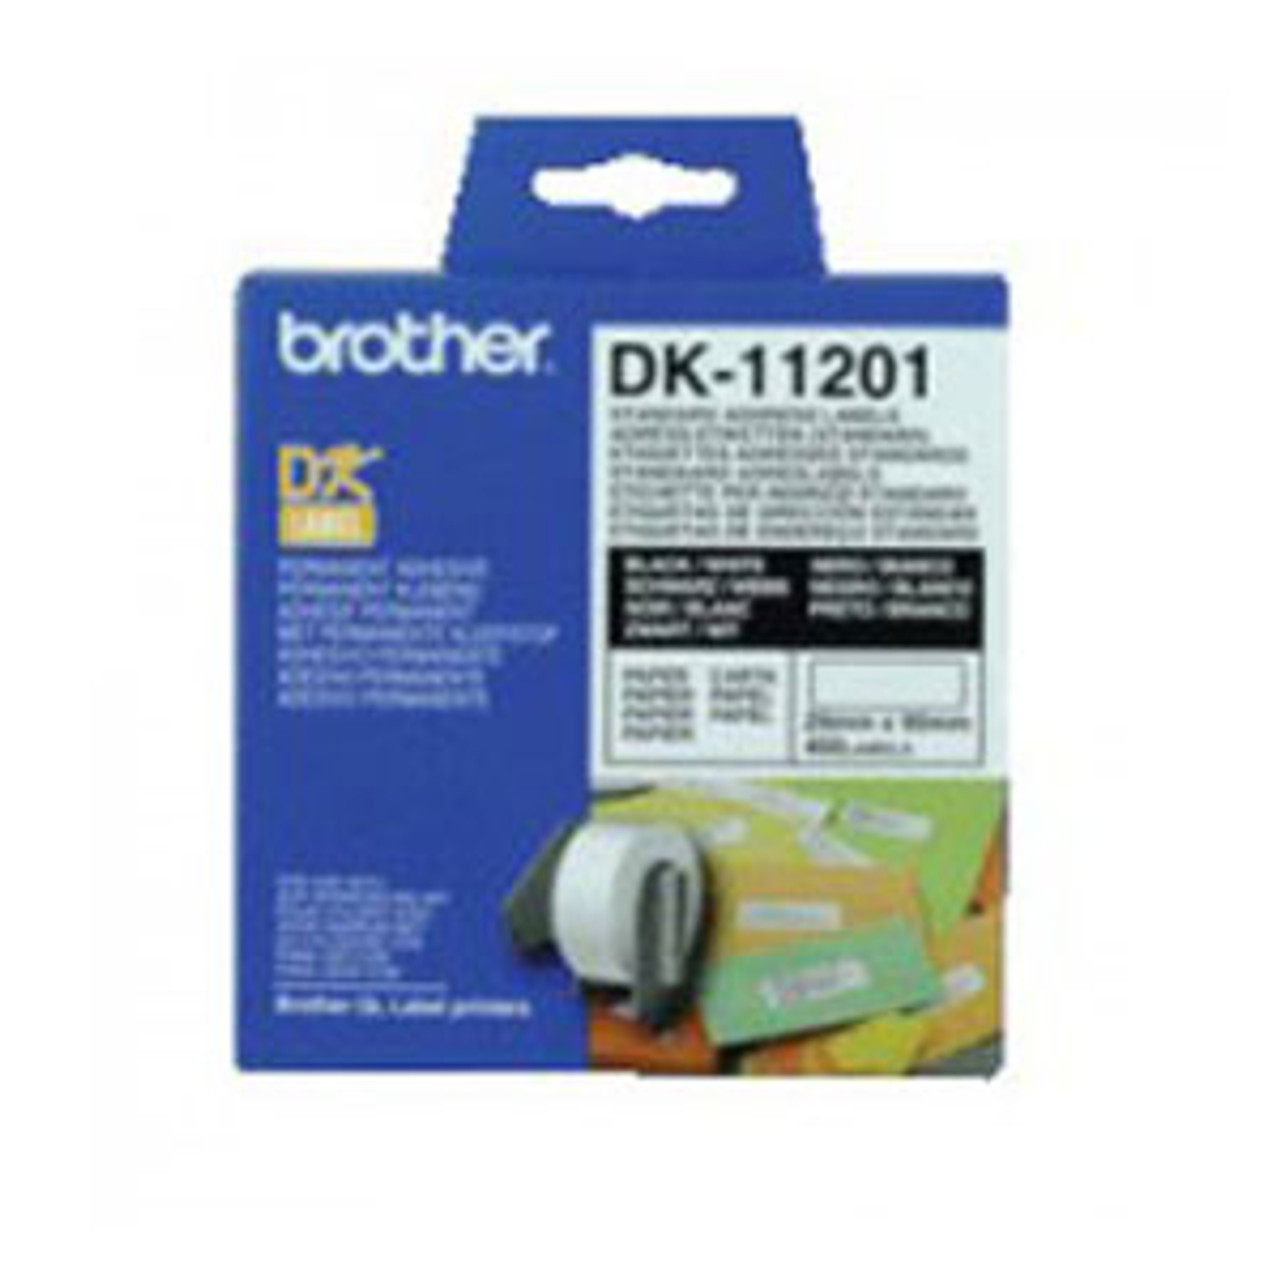 Image for Brother DK11201 White Label 400 per roll CX Computer Superstore